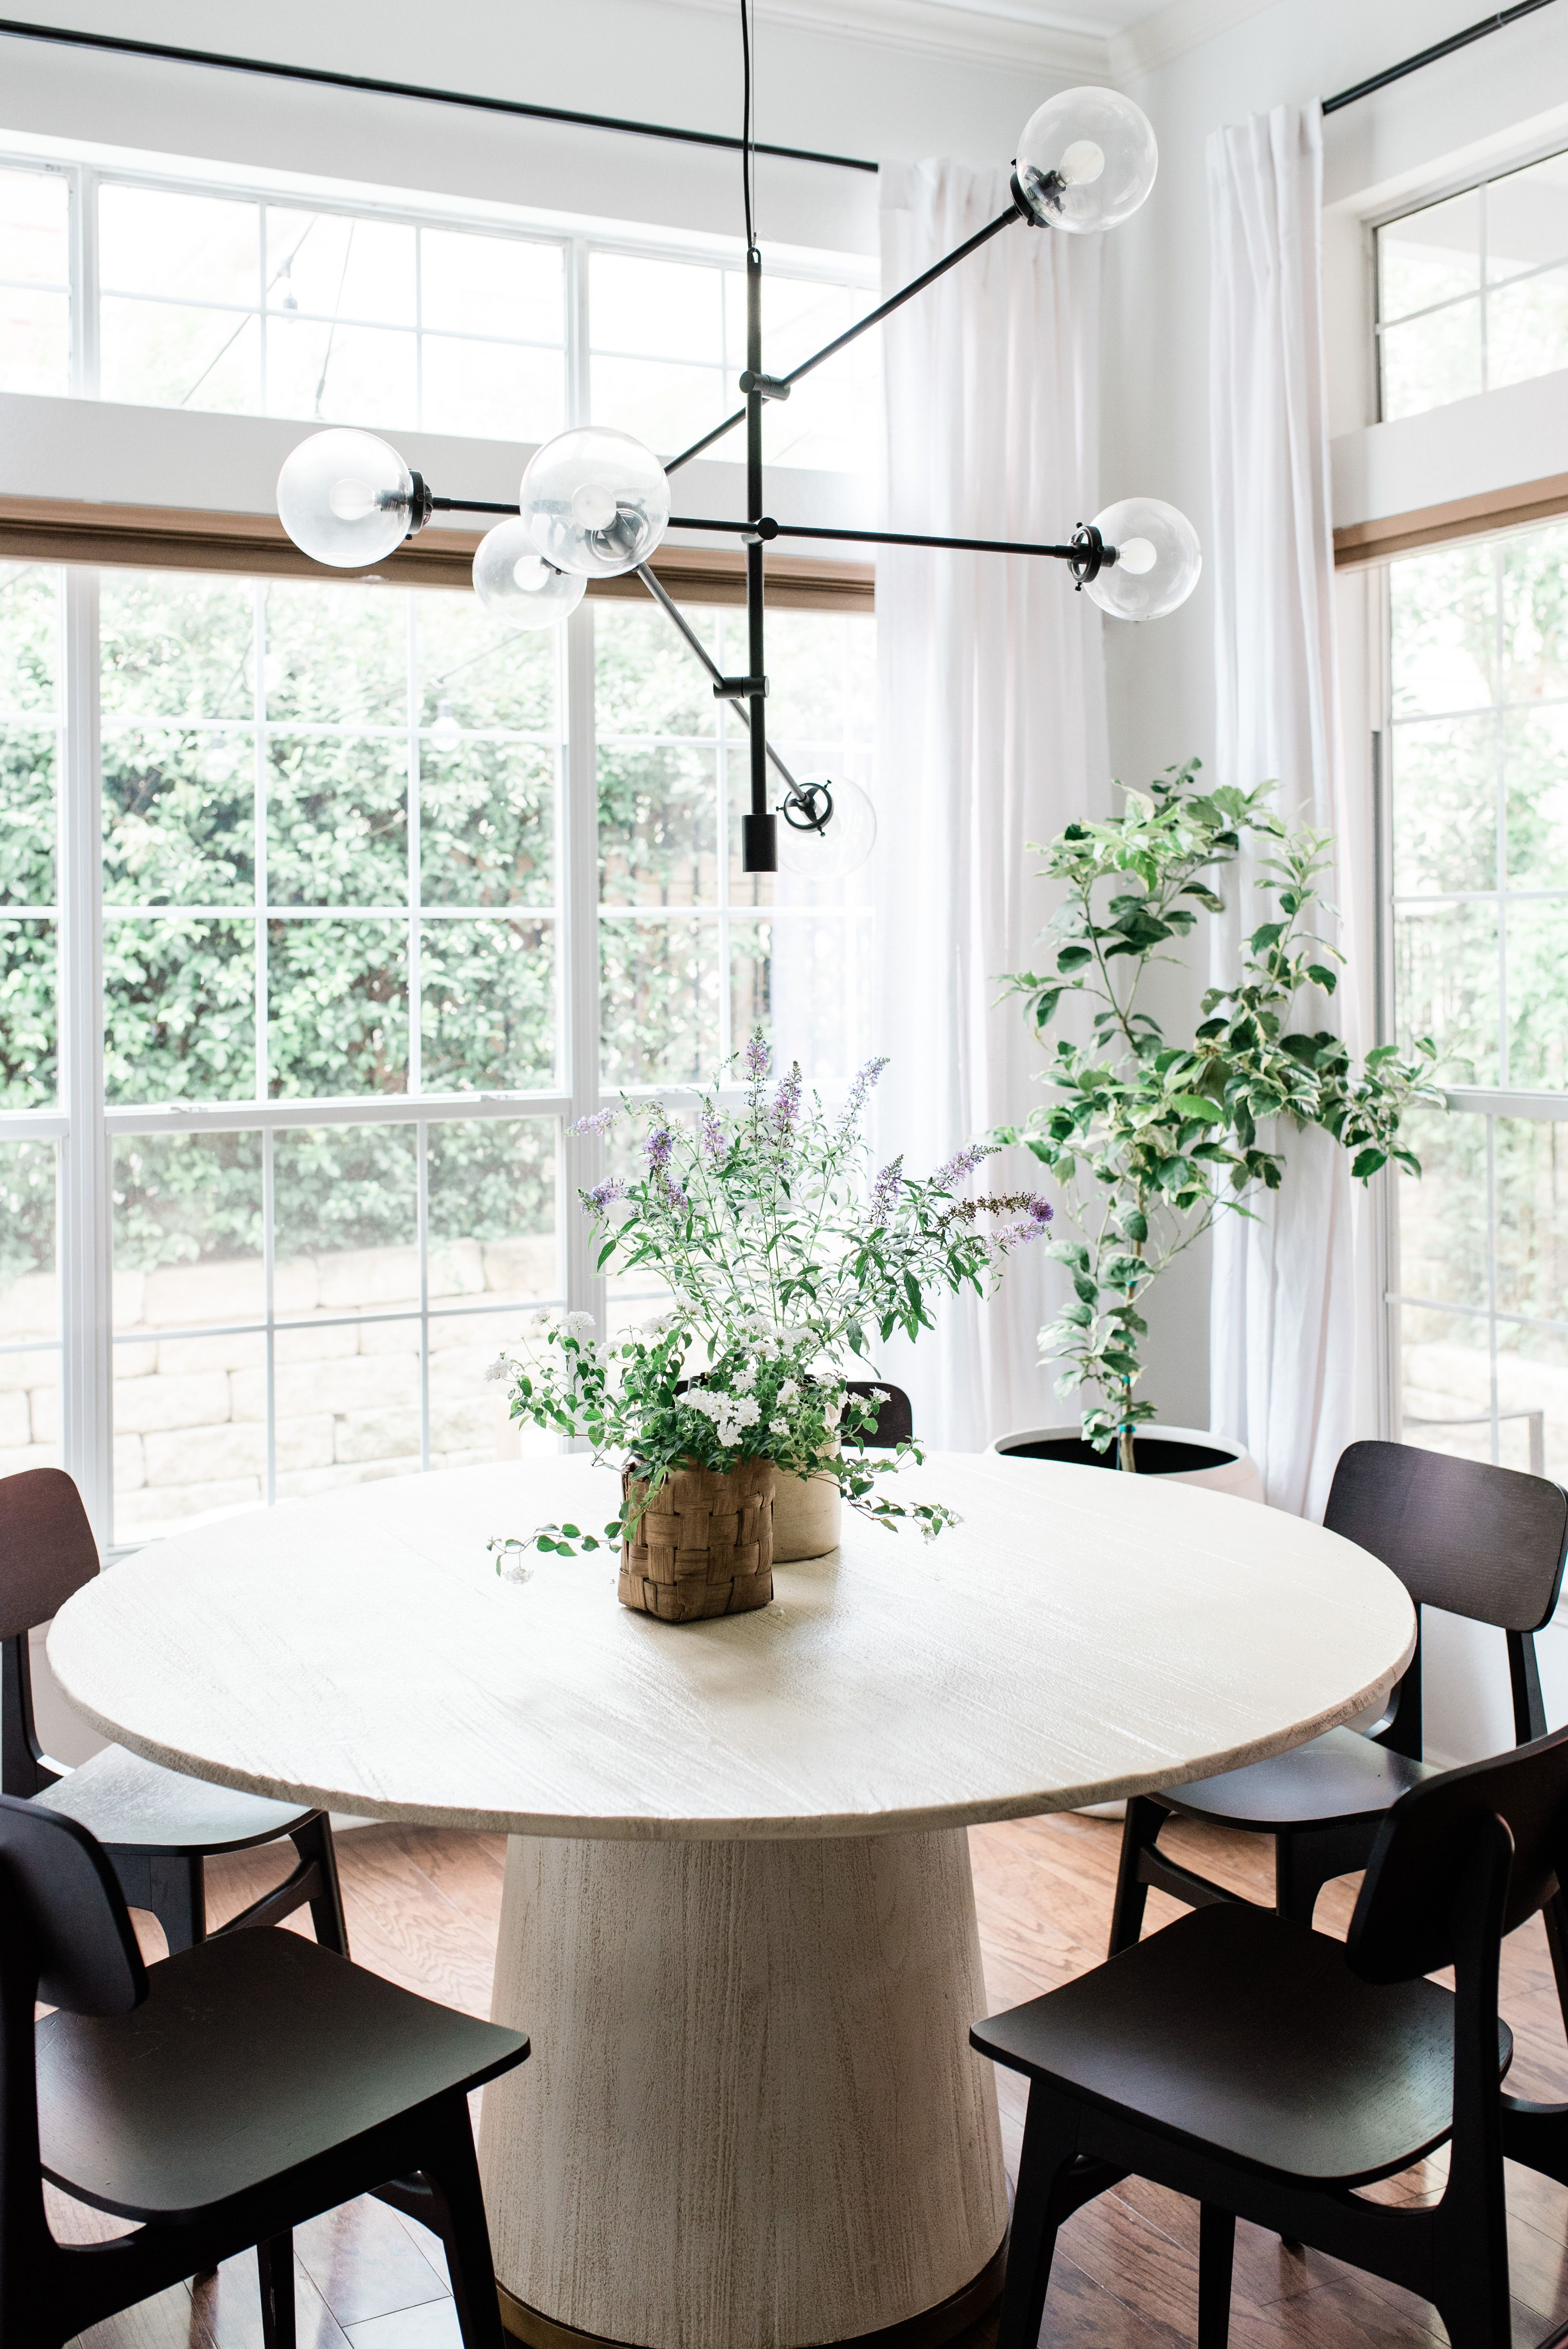 New Dining Room Reveal A Modern Dining Nook Flooded With Natural Light The Round Dining T Round Dining Room Round Dining Room Table Modern Dining Room Tables